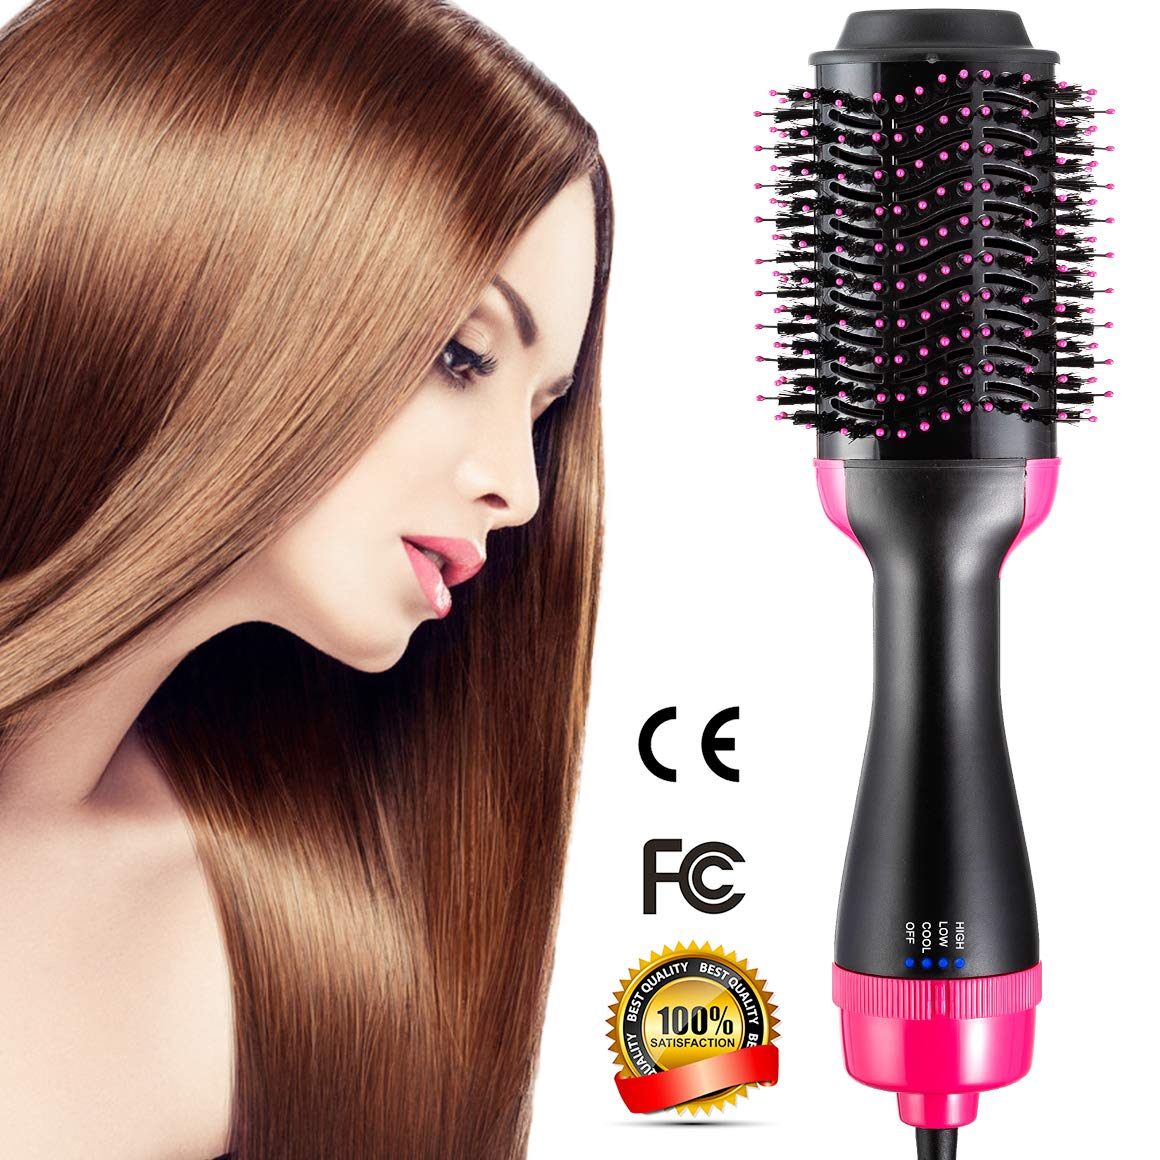 One Step Hair Dryer & Volumizer, Hot Air Brush All In One Hair Brush and Dryer Professional Negative Ion Hair Hot Comb, Black by Gelma (Image #1)